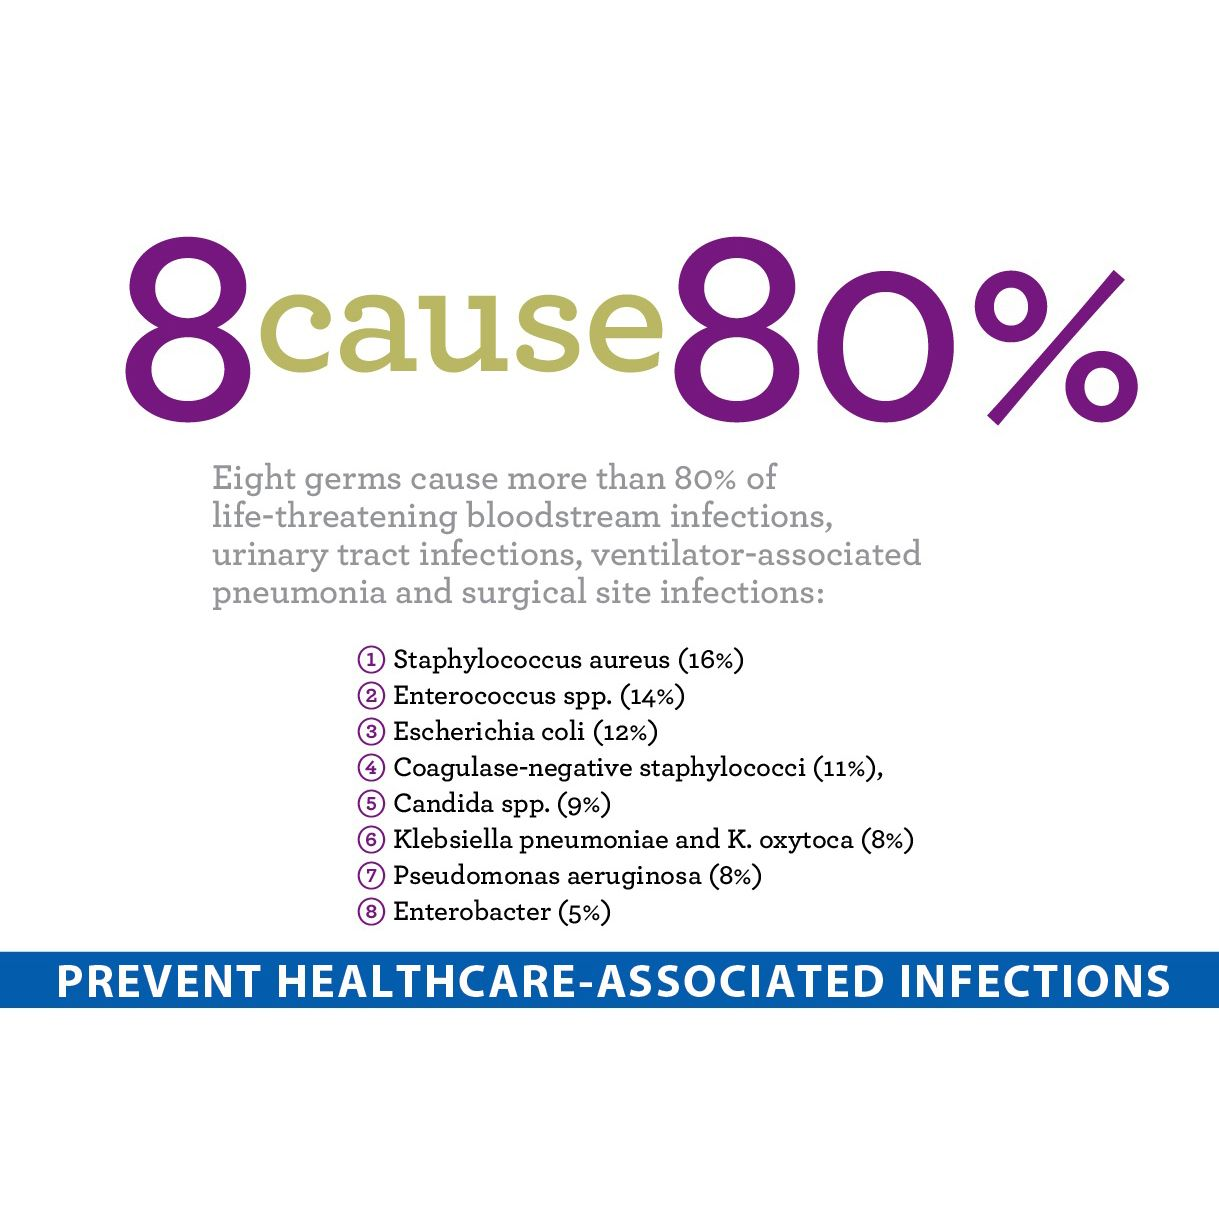 Pin on Public Health Infographics